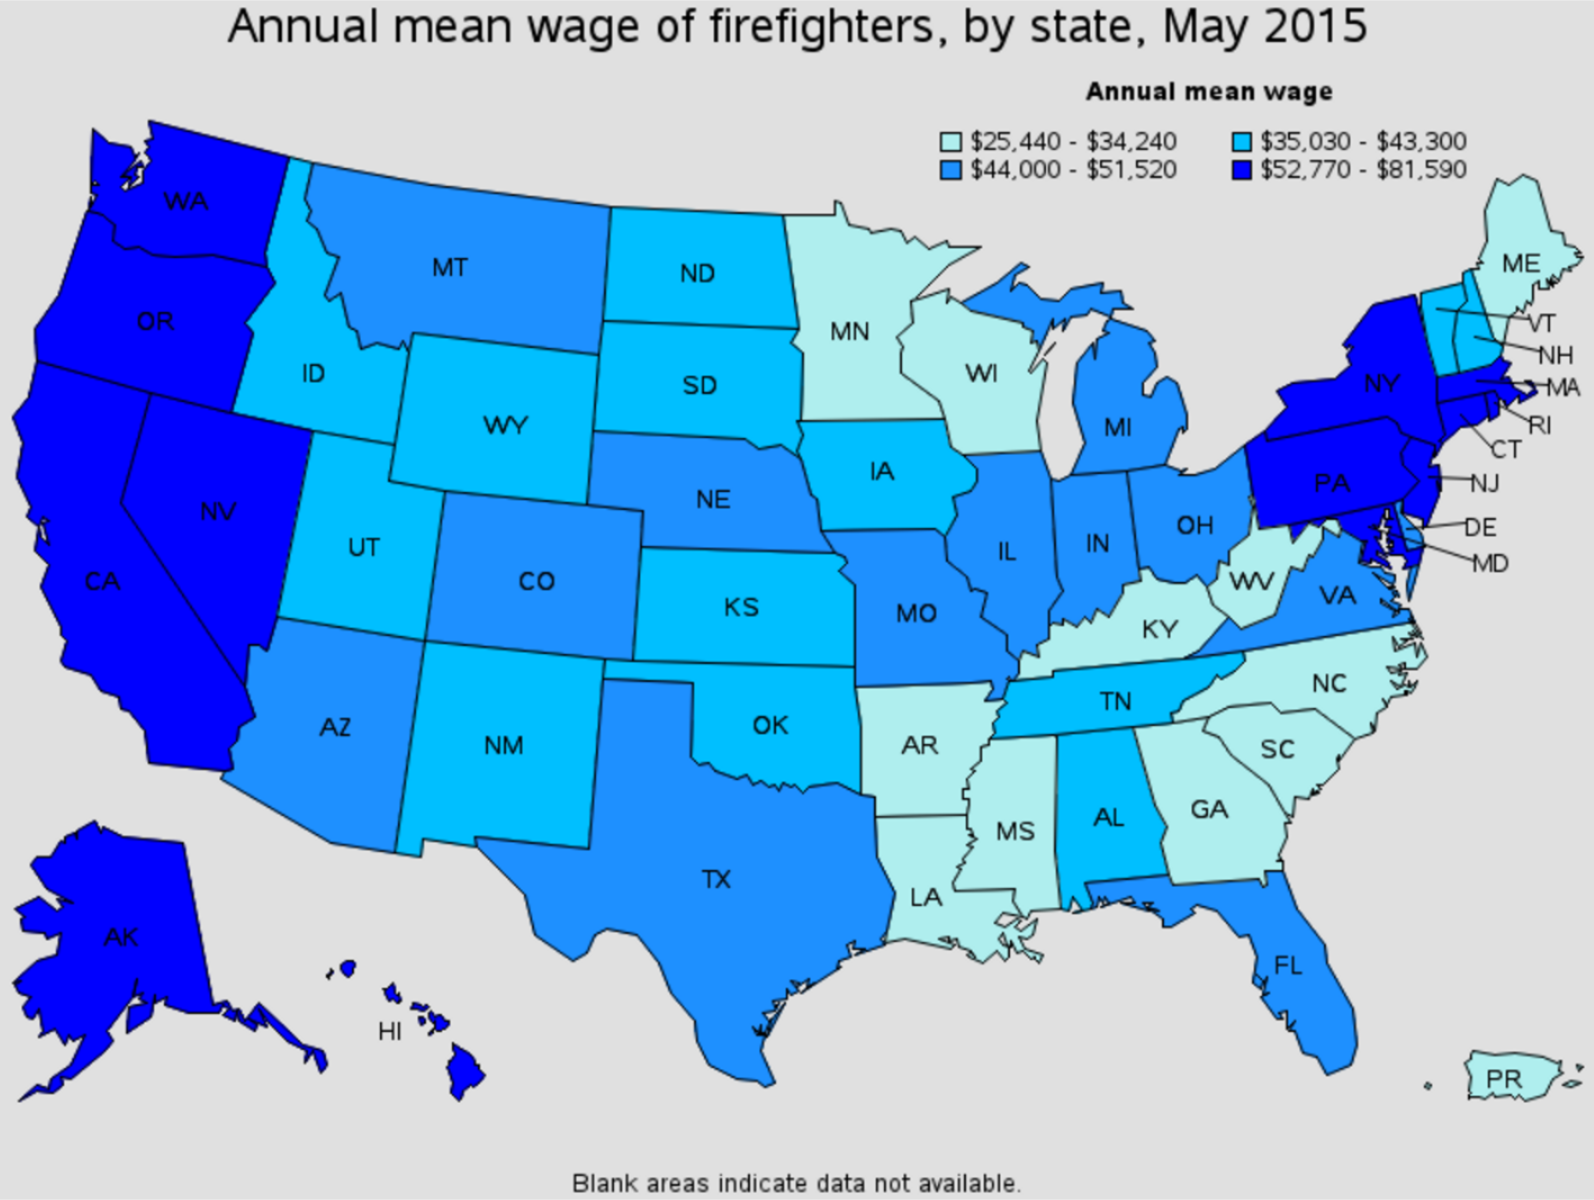 firefighter average salary by state Lewisville Texas